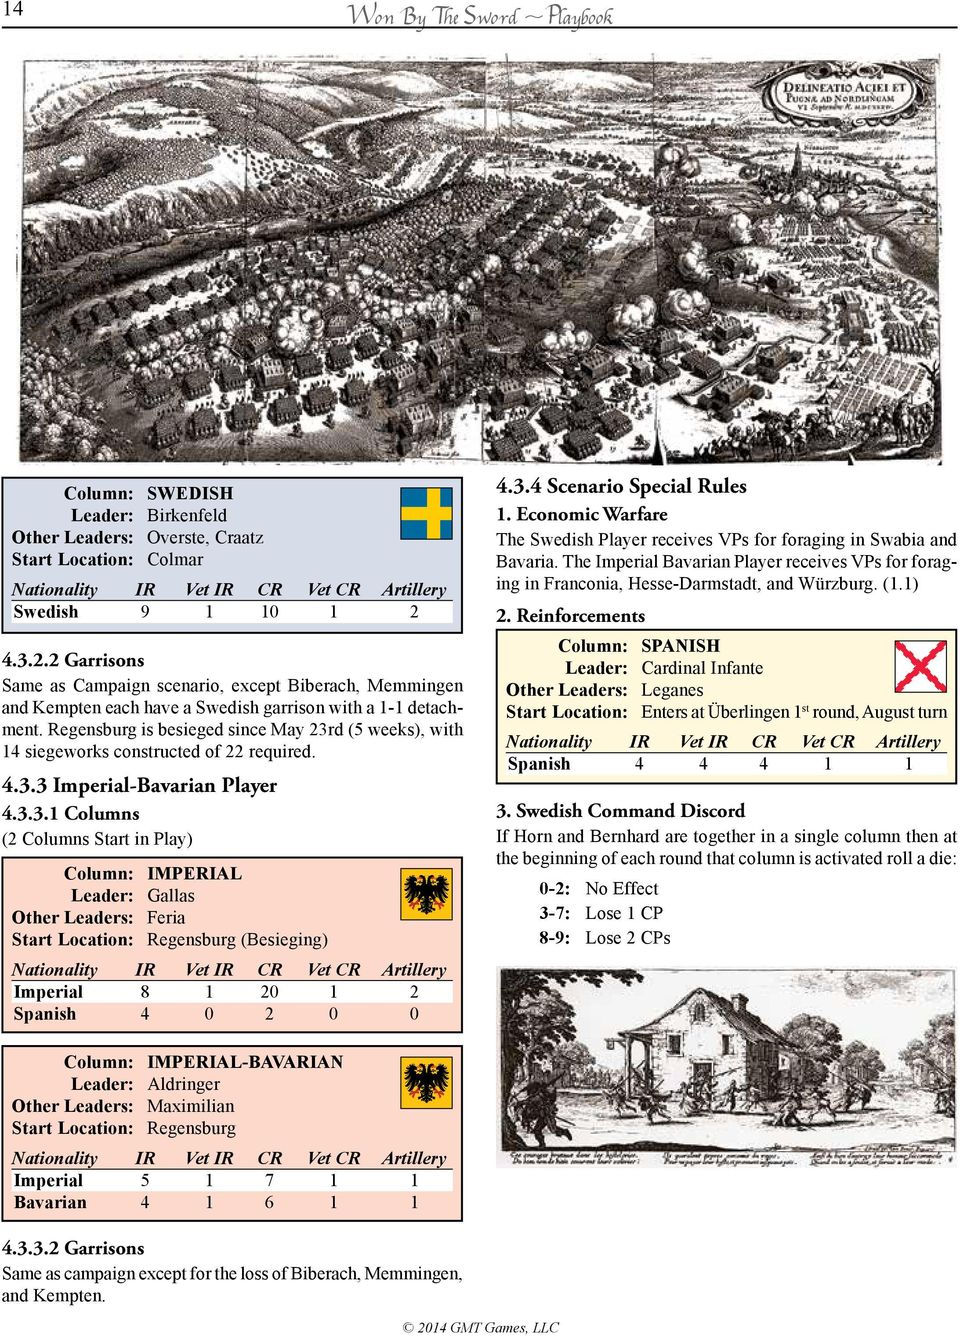 Regensburg is besieged since May 23rd (5 weeks), with 14 siegeworks constructed of 22 required. 4.3.3 Imperial-Bavarian Player 4.3.3.1 Columns (2 Columns Start in Play) Leader: Gallas Other Leaders: Feria Start Location: Regensburg (Besieging) Imperial 8 1 20 1 2 Spanish 4 0 2 0 0 4.